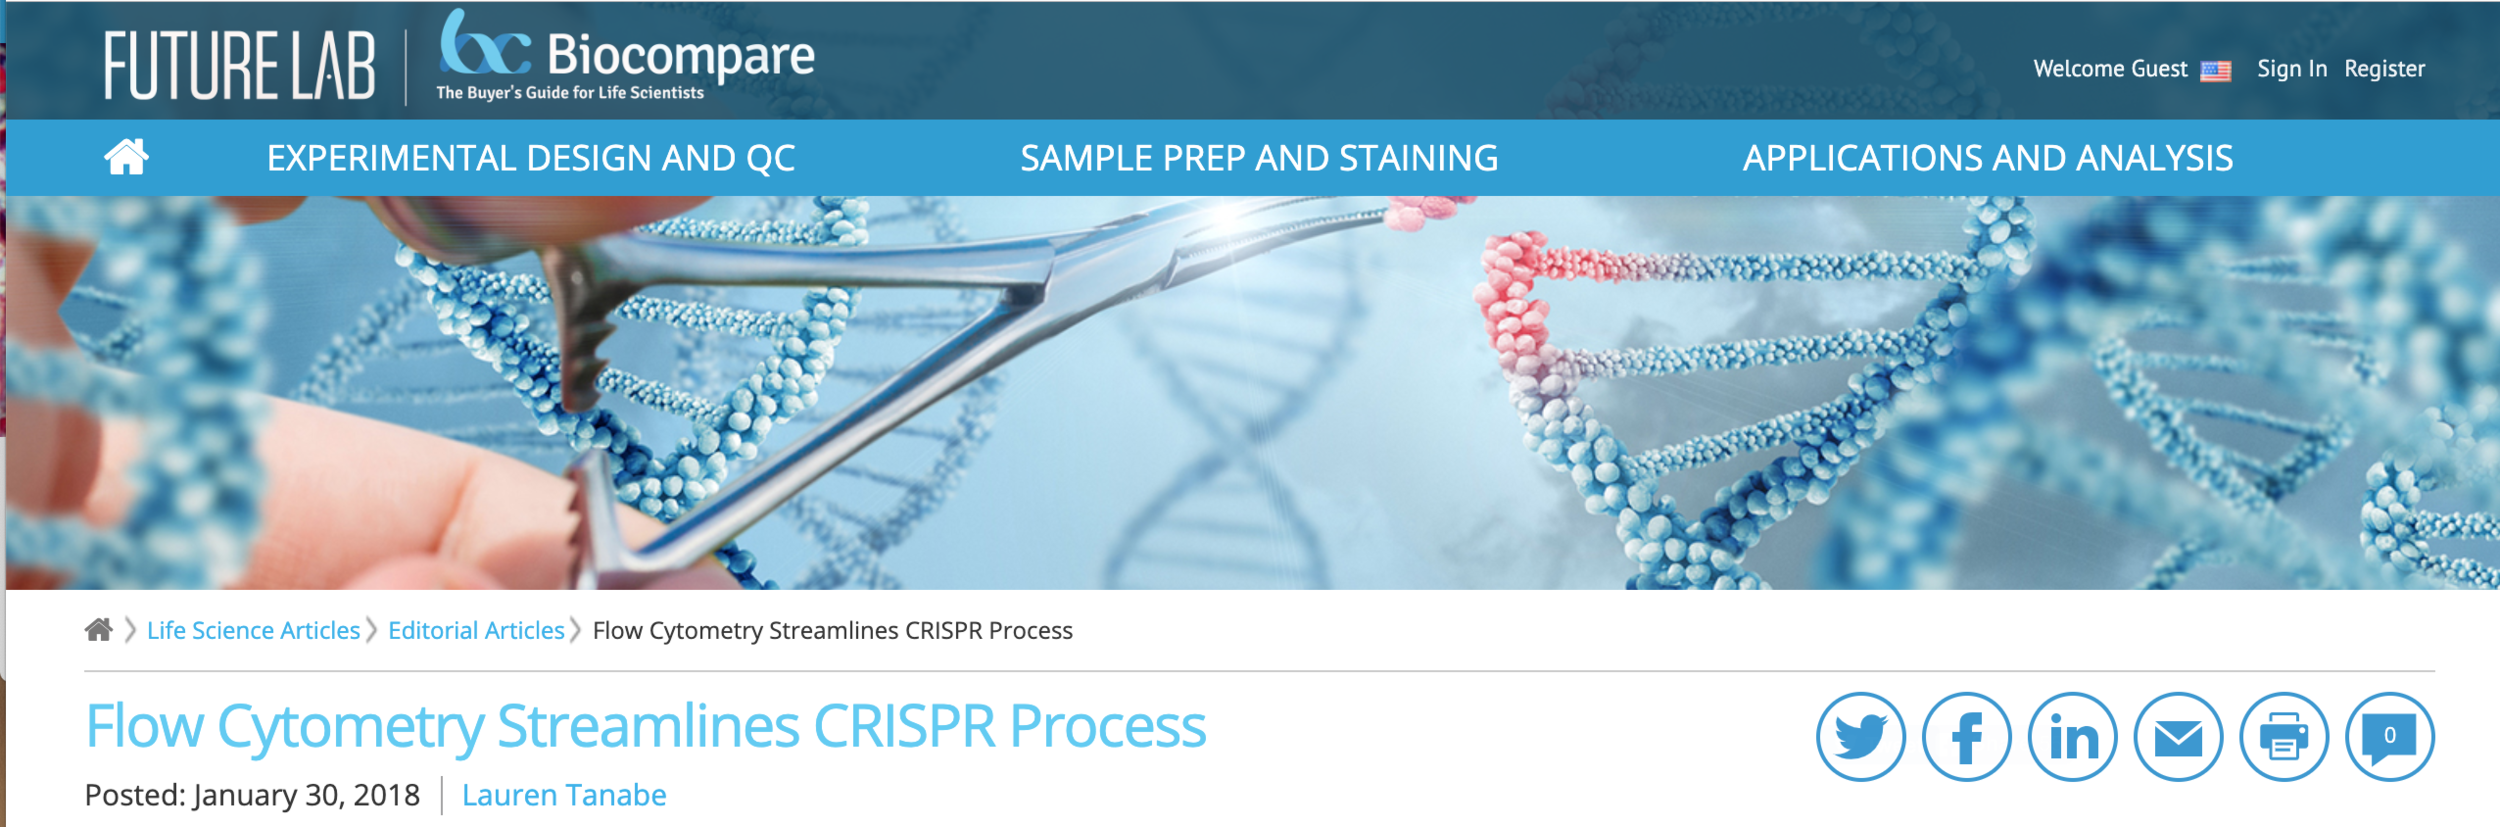 Flow Cytometry Streamlines CRISPR Process, BioCompare, January 30, 2018 -